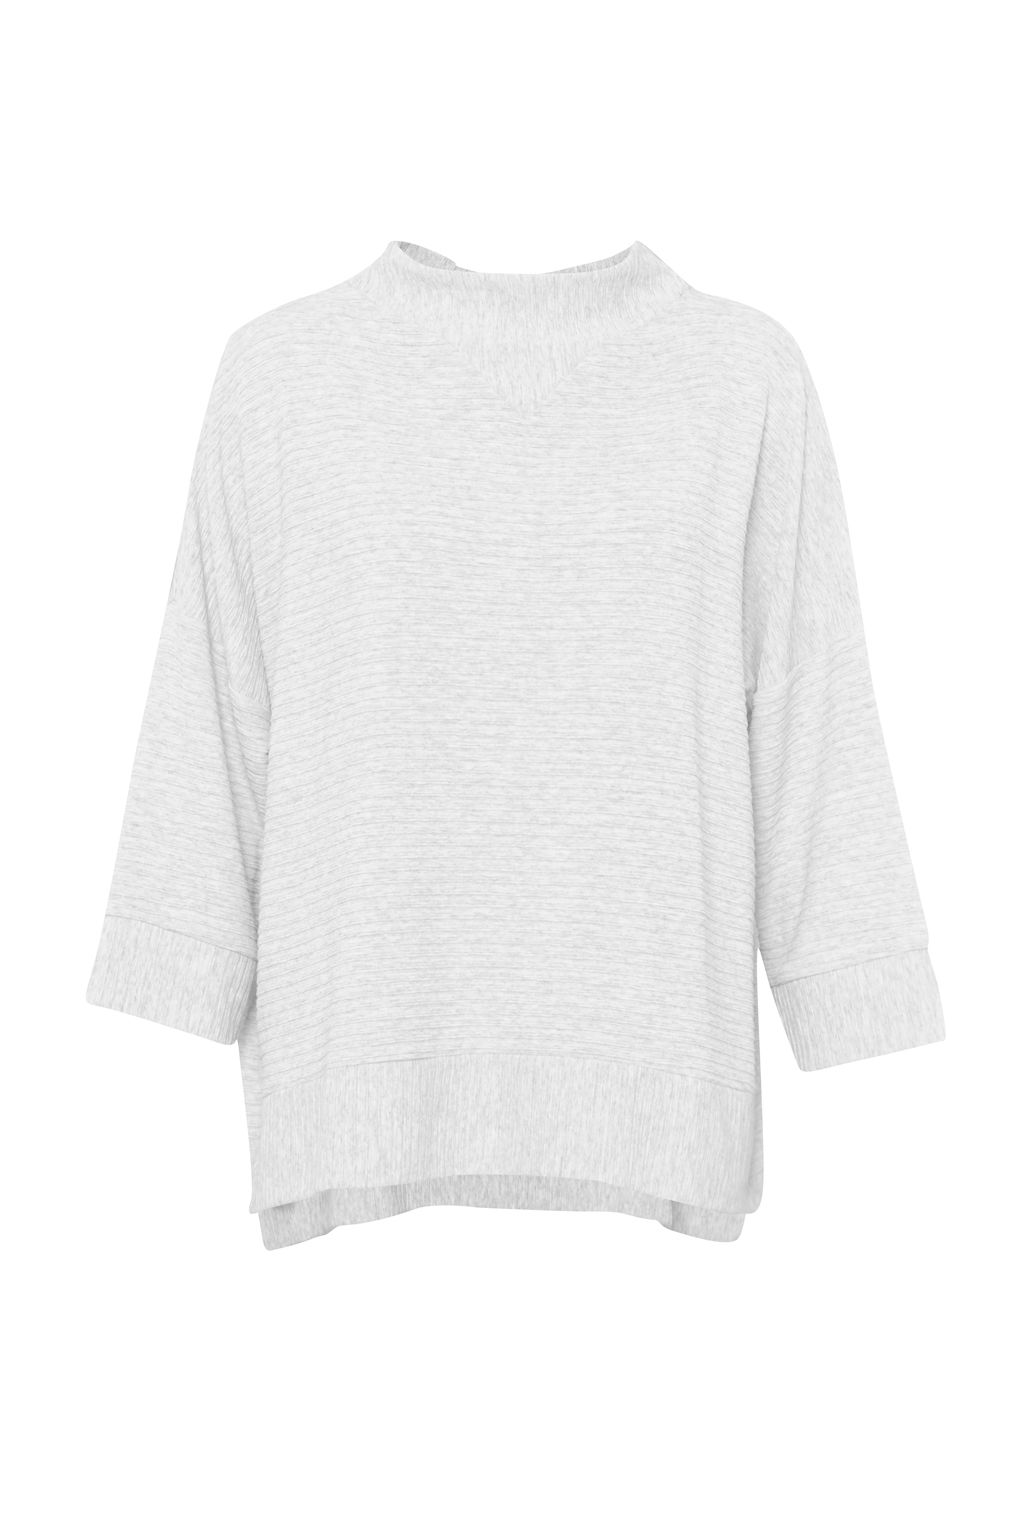 French Connection Sudan Marl Top, White